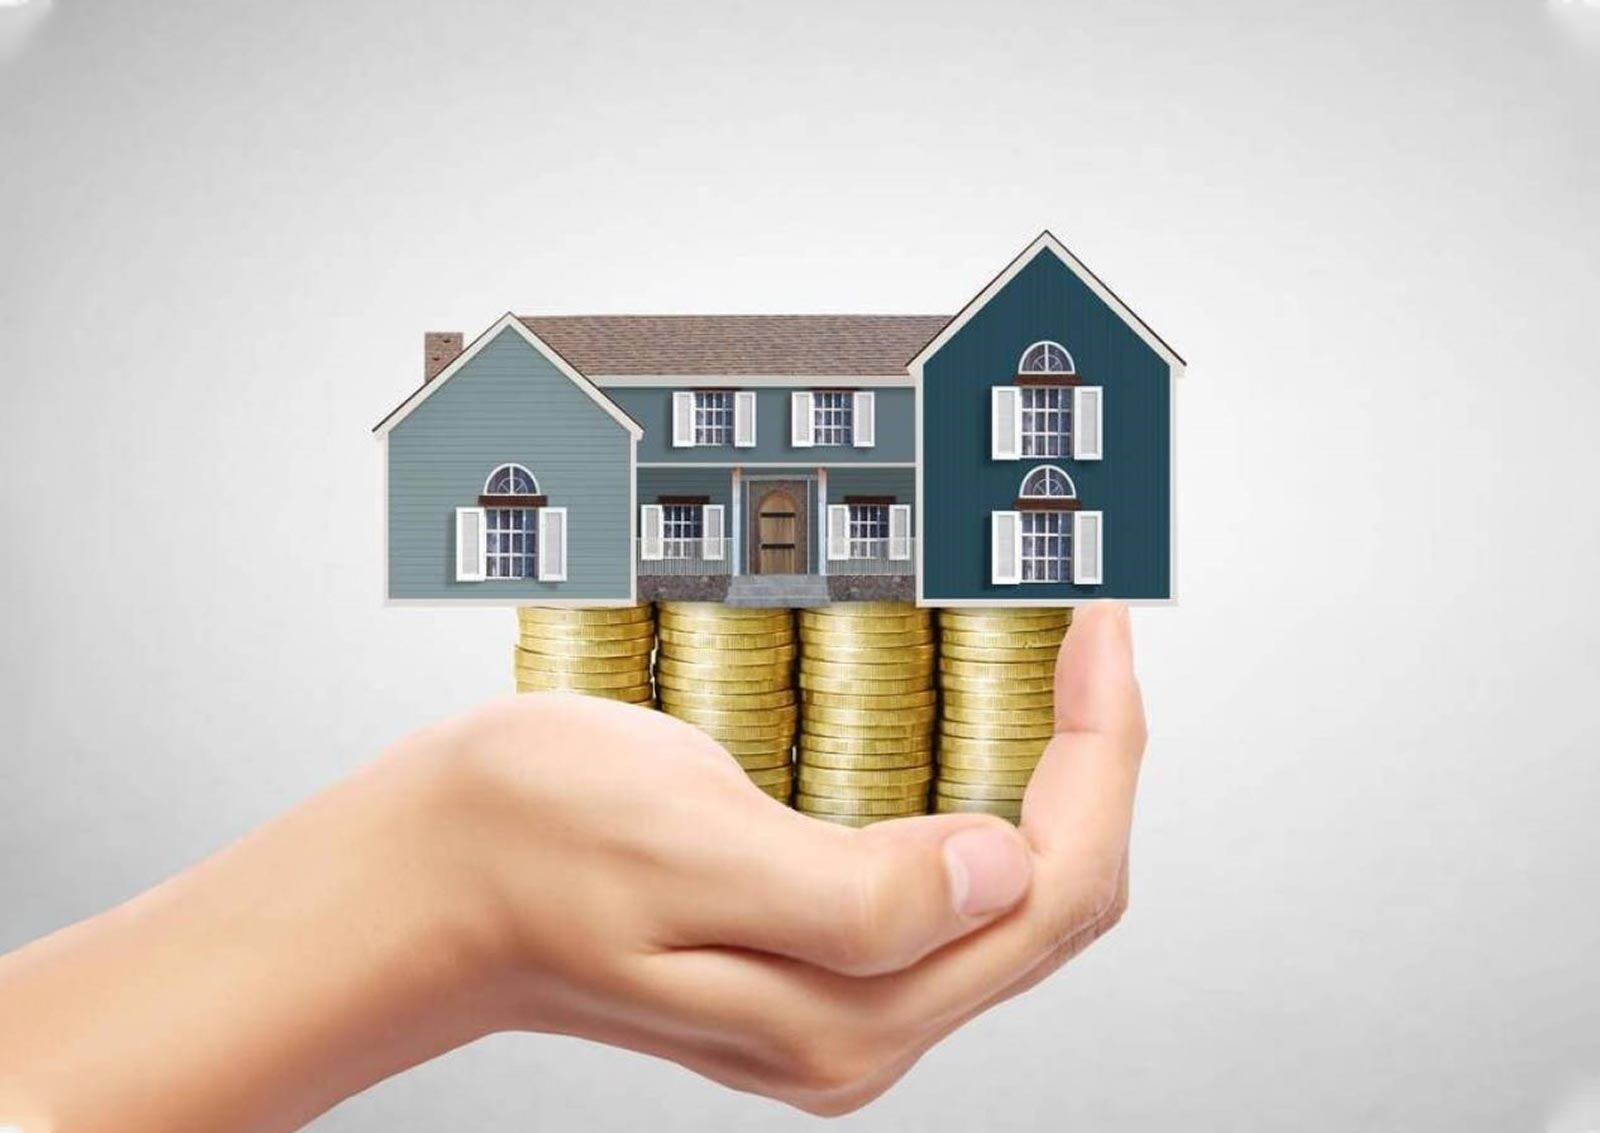 How Do I Improve My Chances To Qualify For A Conventional Home Loan?